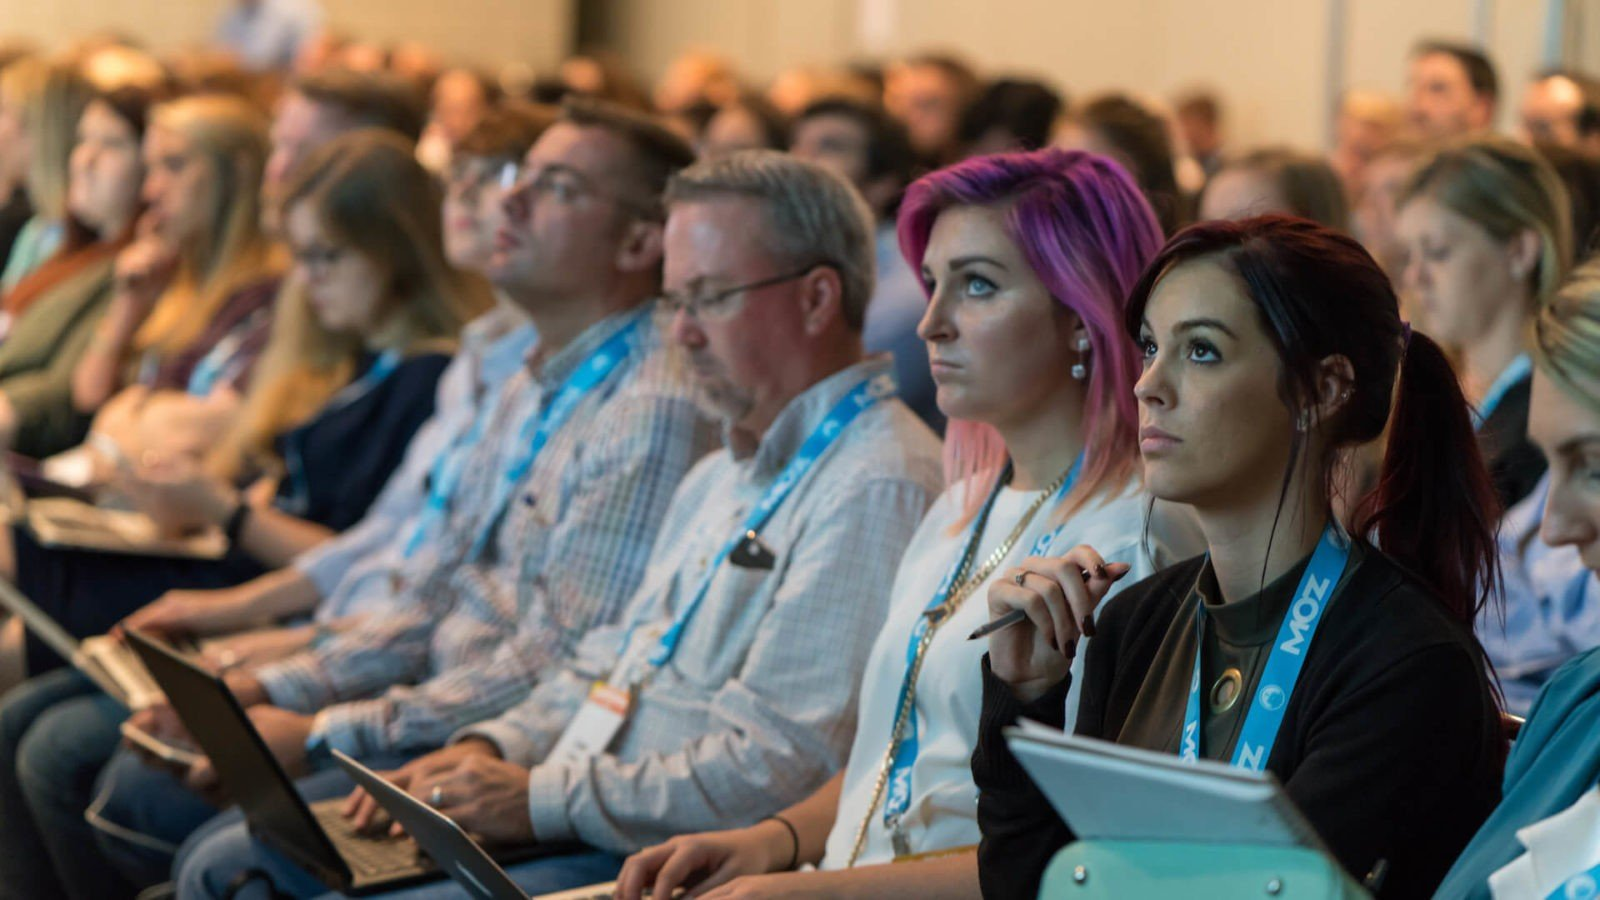 SMX East is back in NYC Oct 24-26